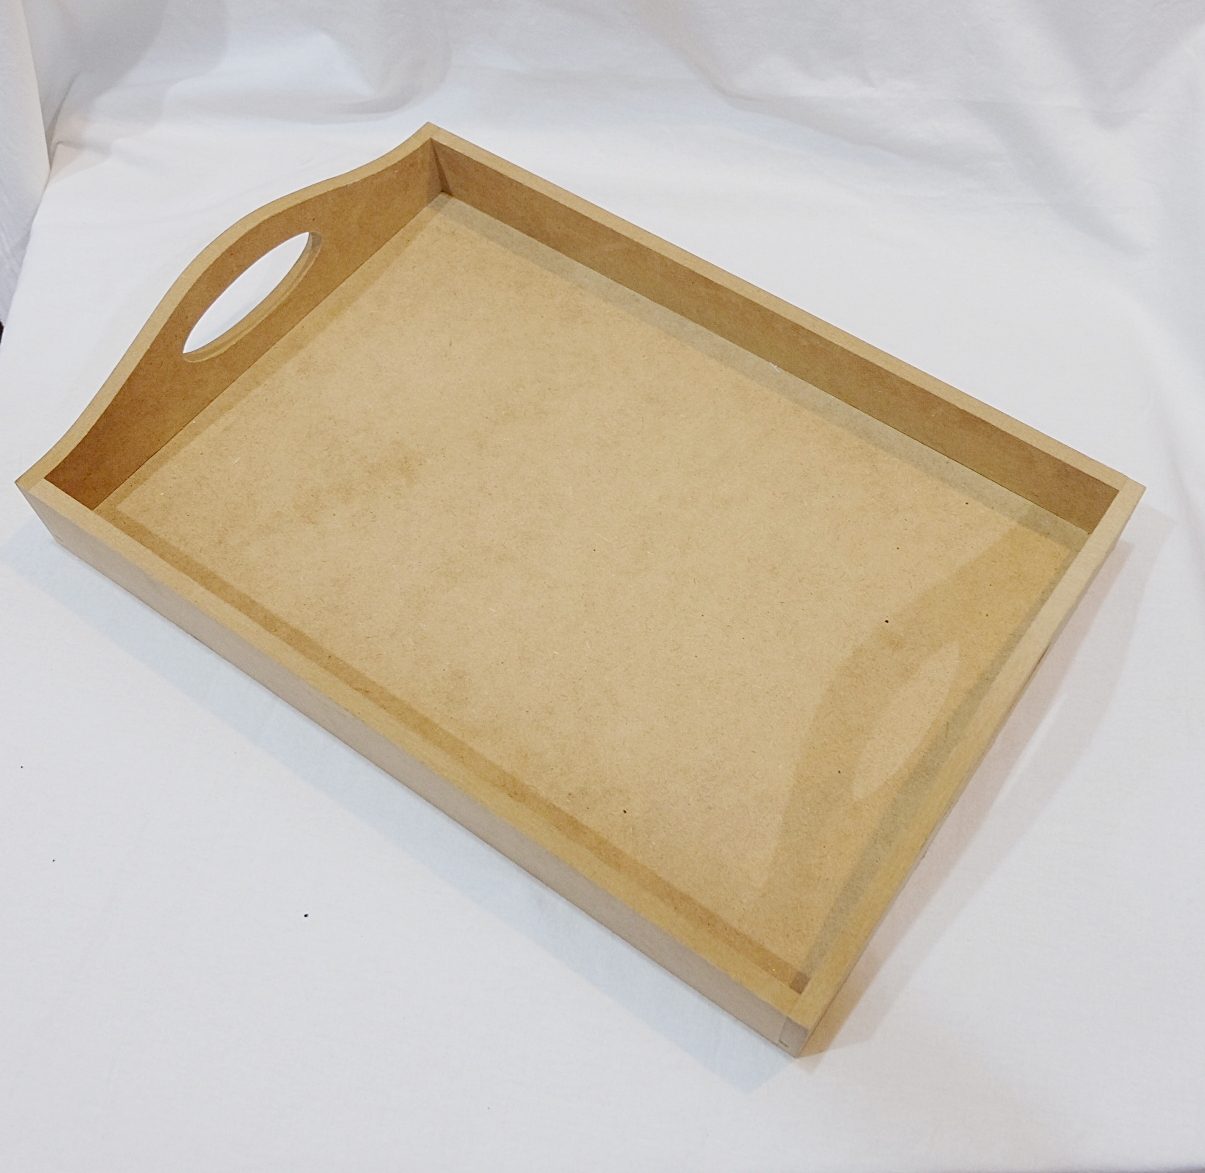 WOODEN TRAY S$8.00